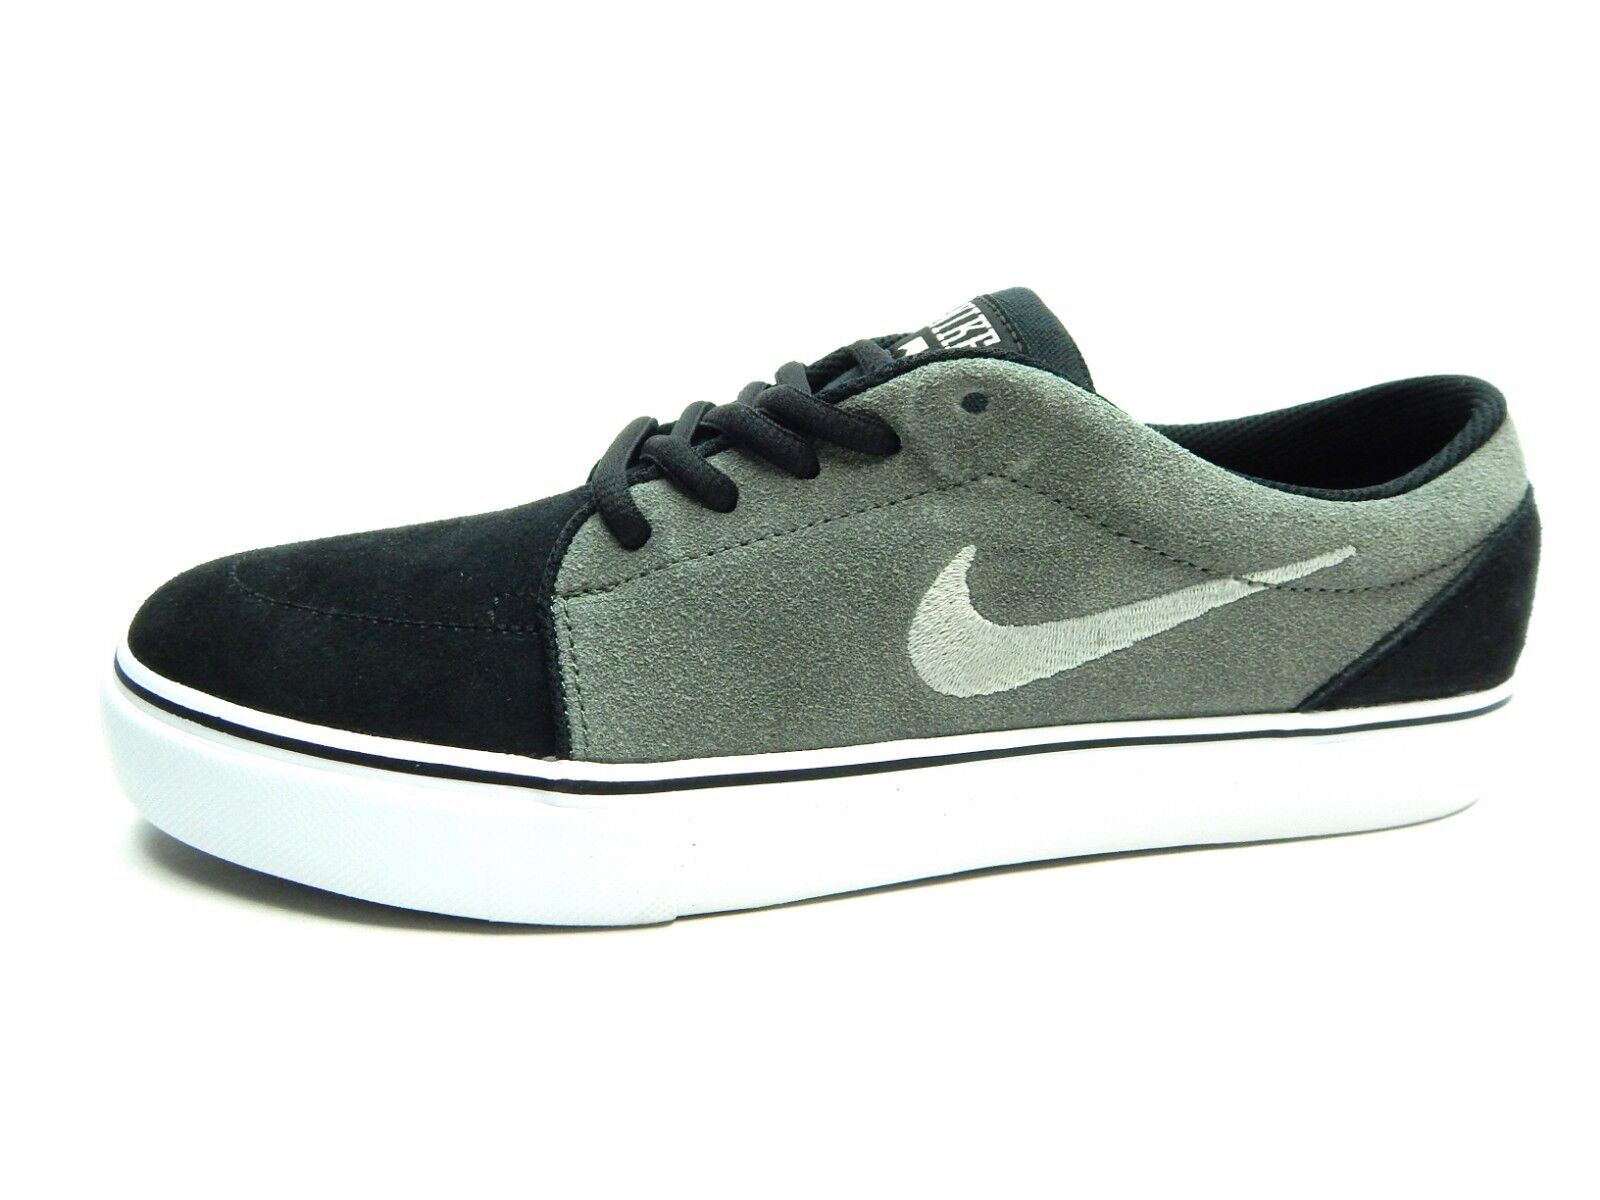 NIKE Men's Satire Black grey white 536404 020 US Men sizes 8.0 to 12.0